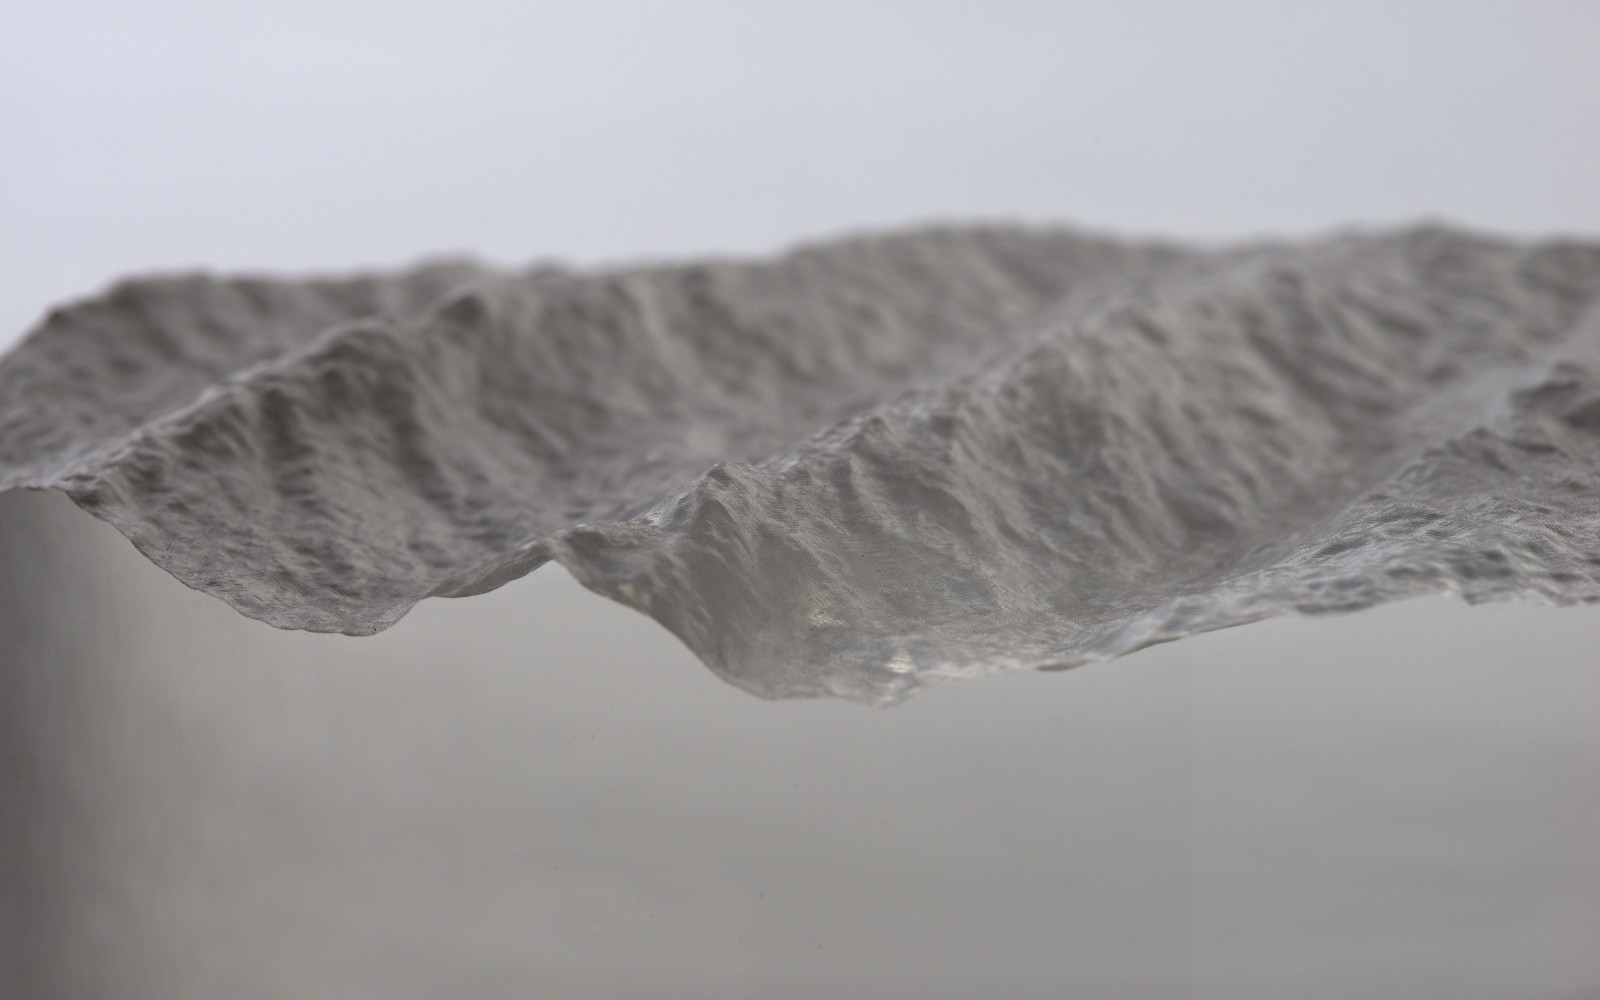 Longitude and latitude – David Bowen's CNC routed sculptures capture the waves